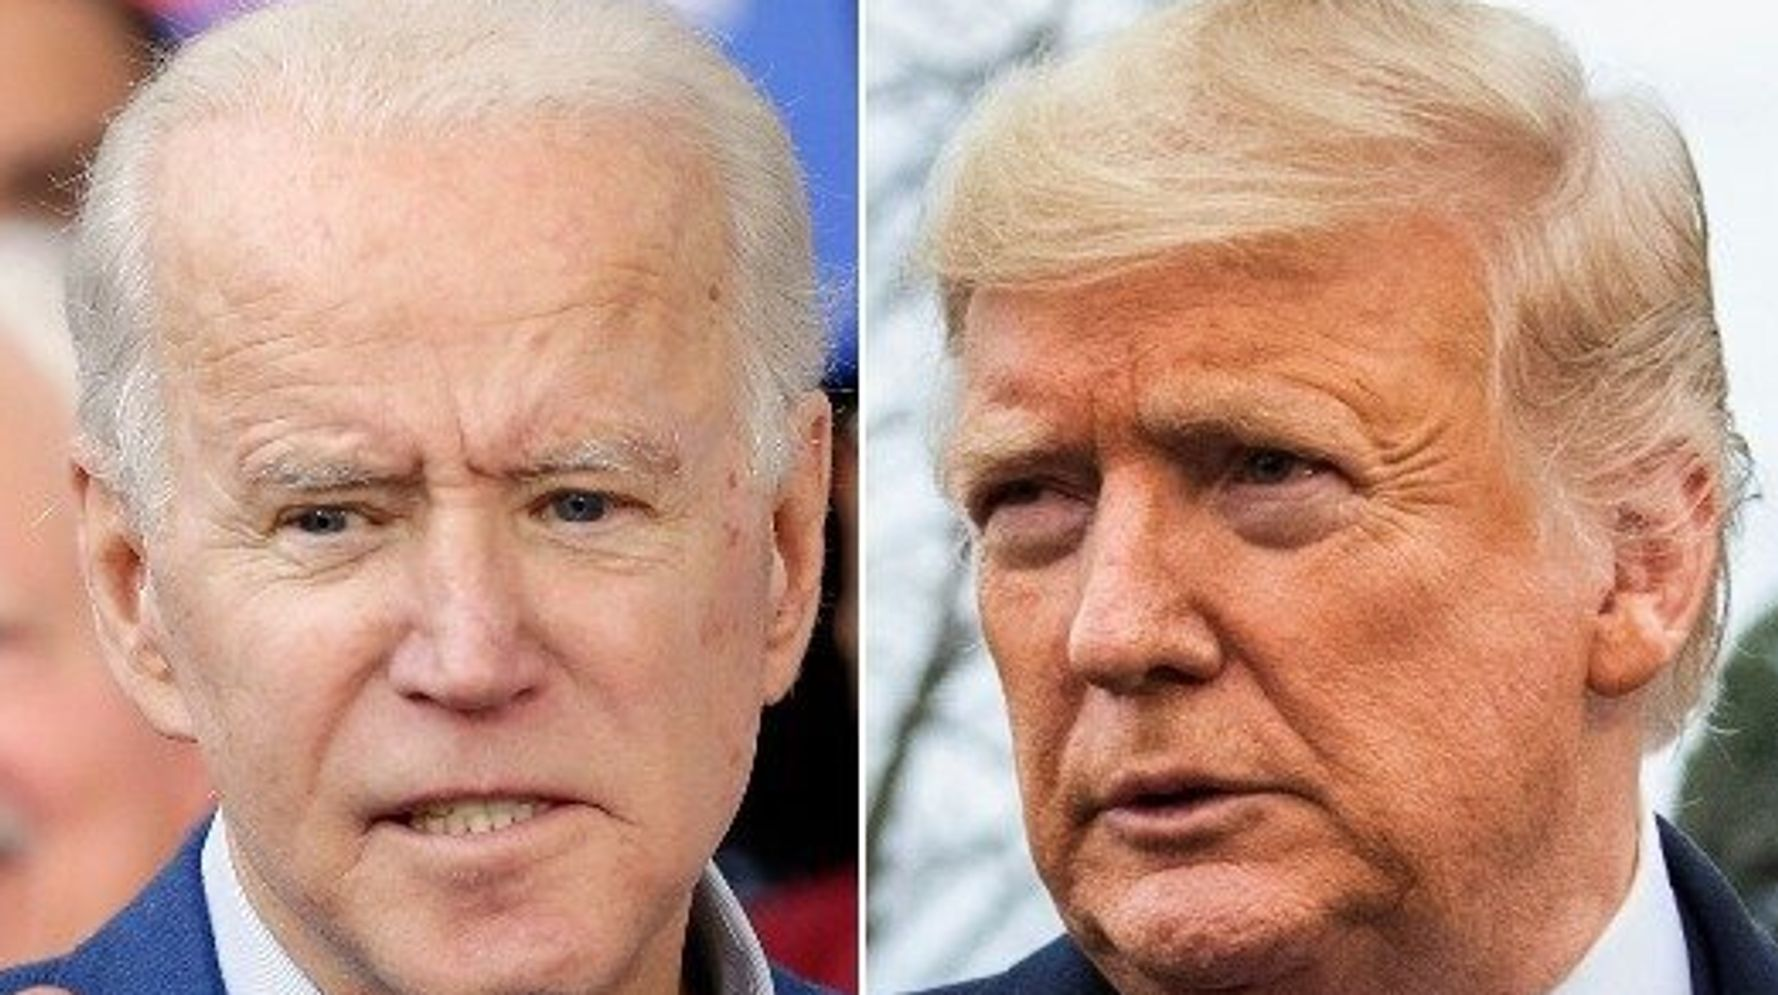 RNC Receives Reality Check After Misguided Attempt At Trolling Joe Biden